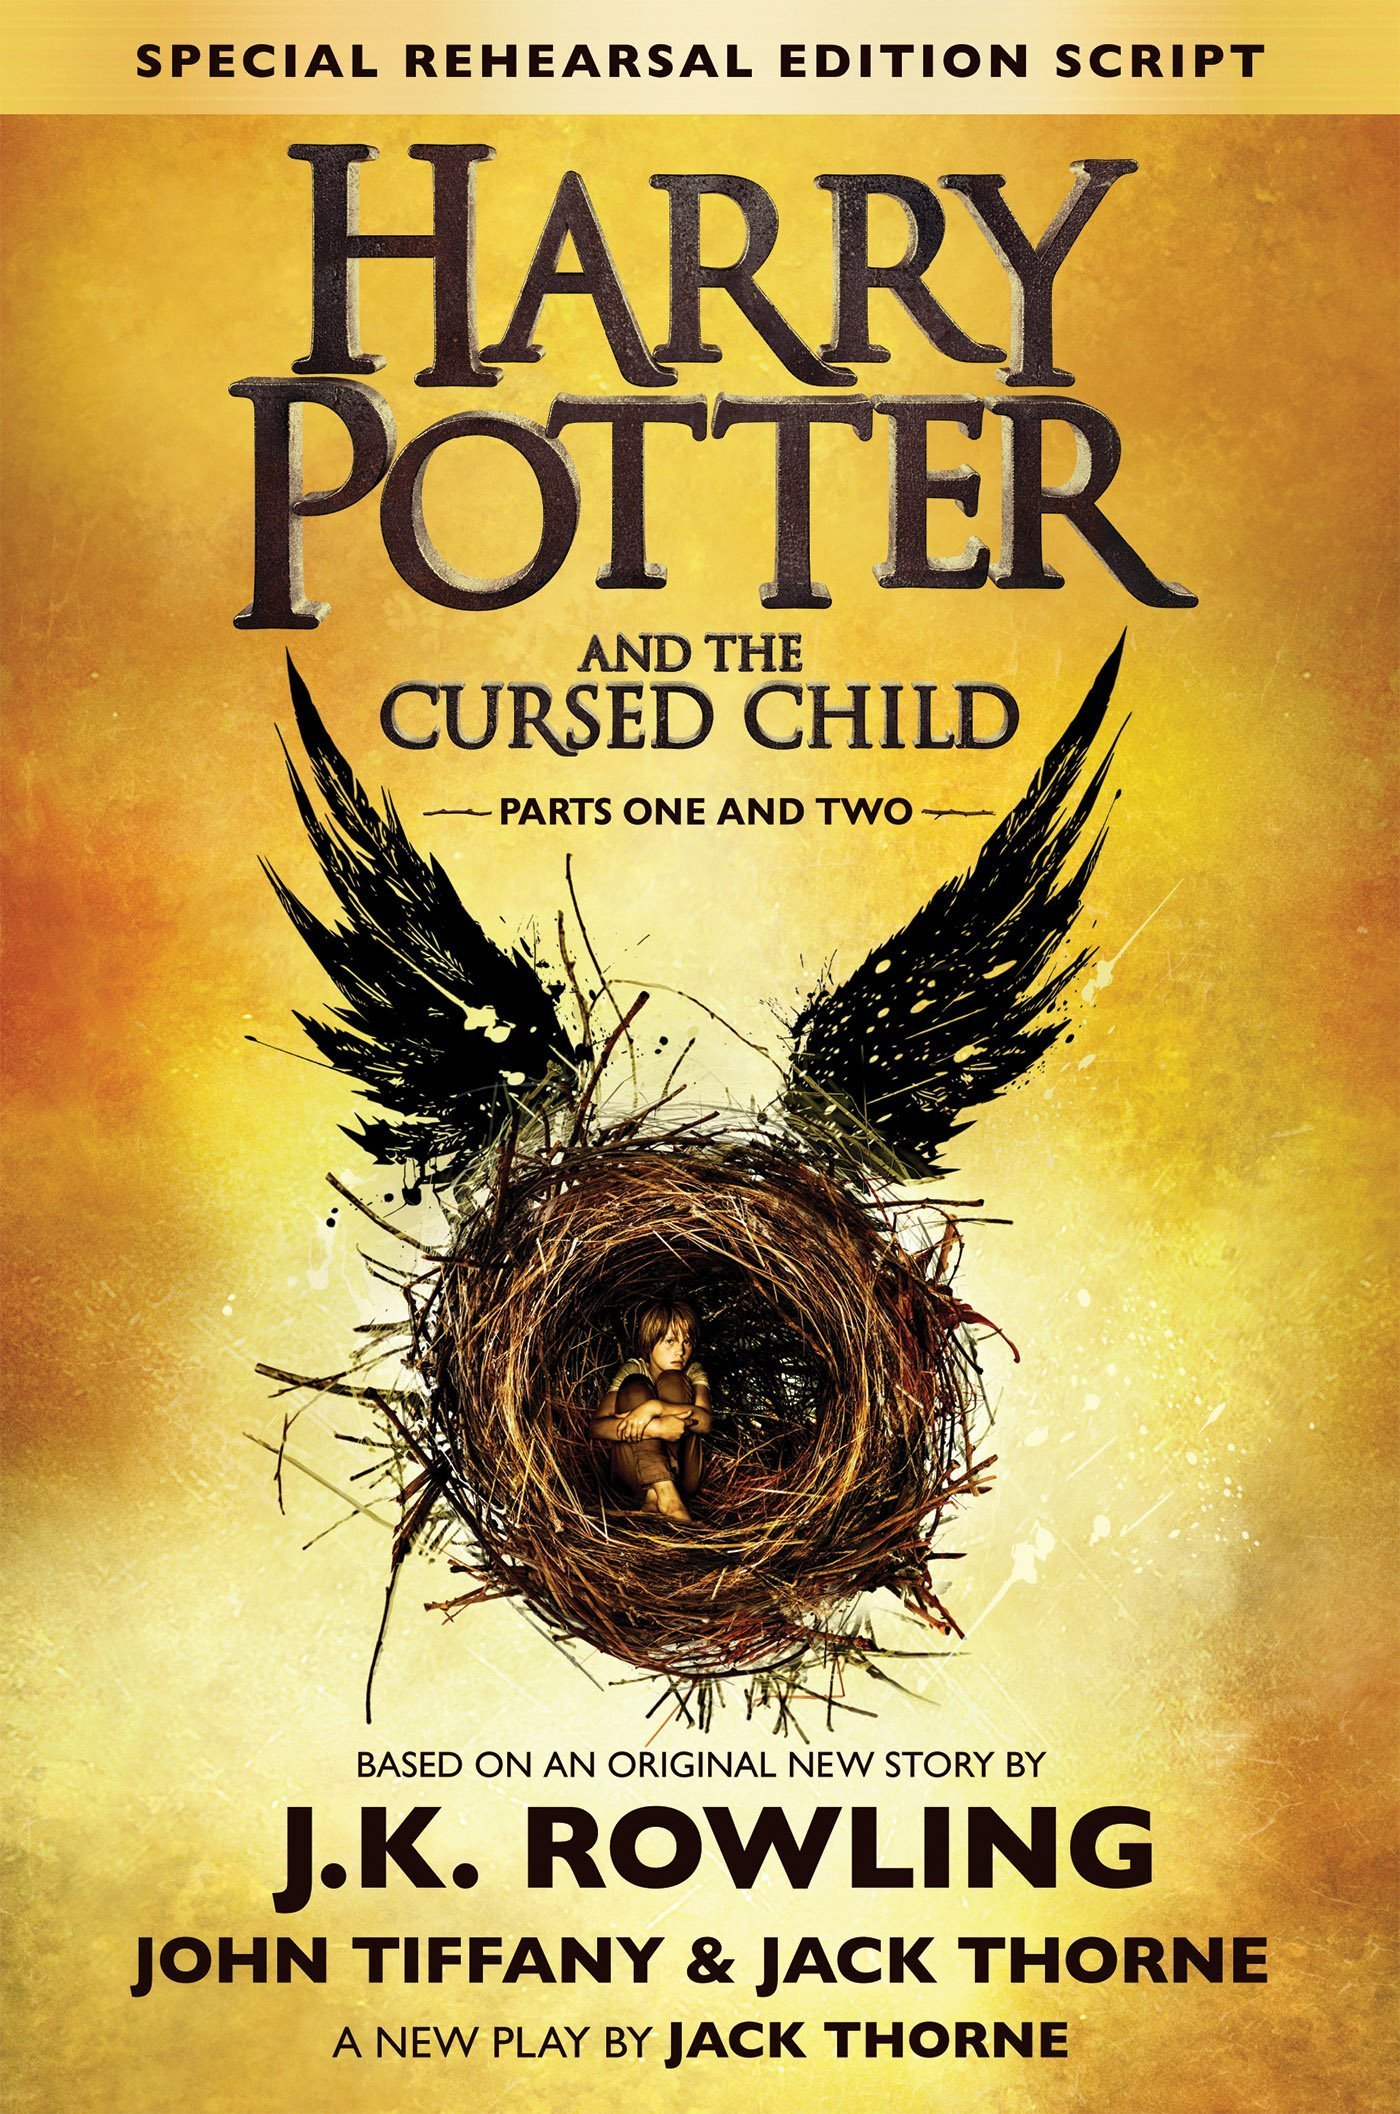 The Cursed Child Review